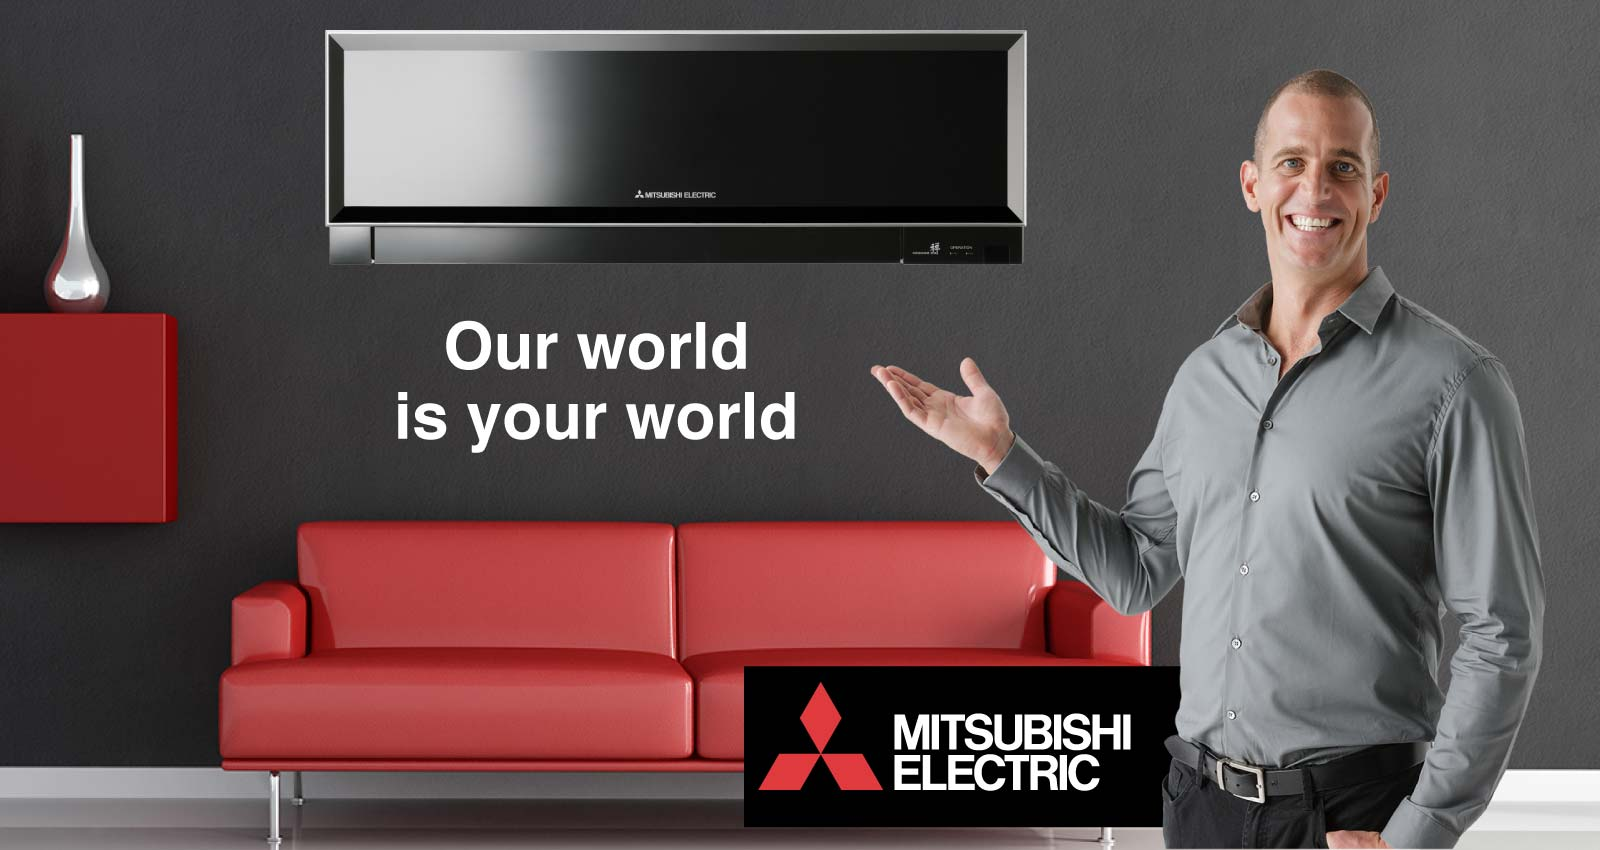 Mitsubishi_electric_air Conditioning Banner Ad. Mitsubishi_zen_2 Mitsubishi  Electric Air Conditioning